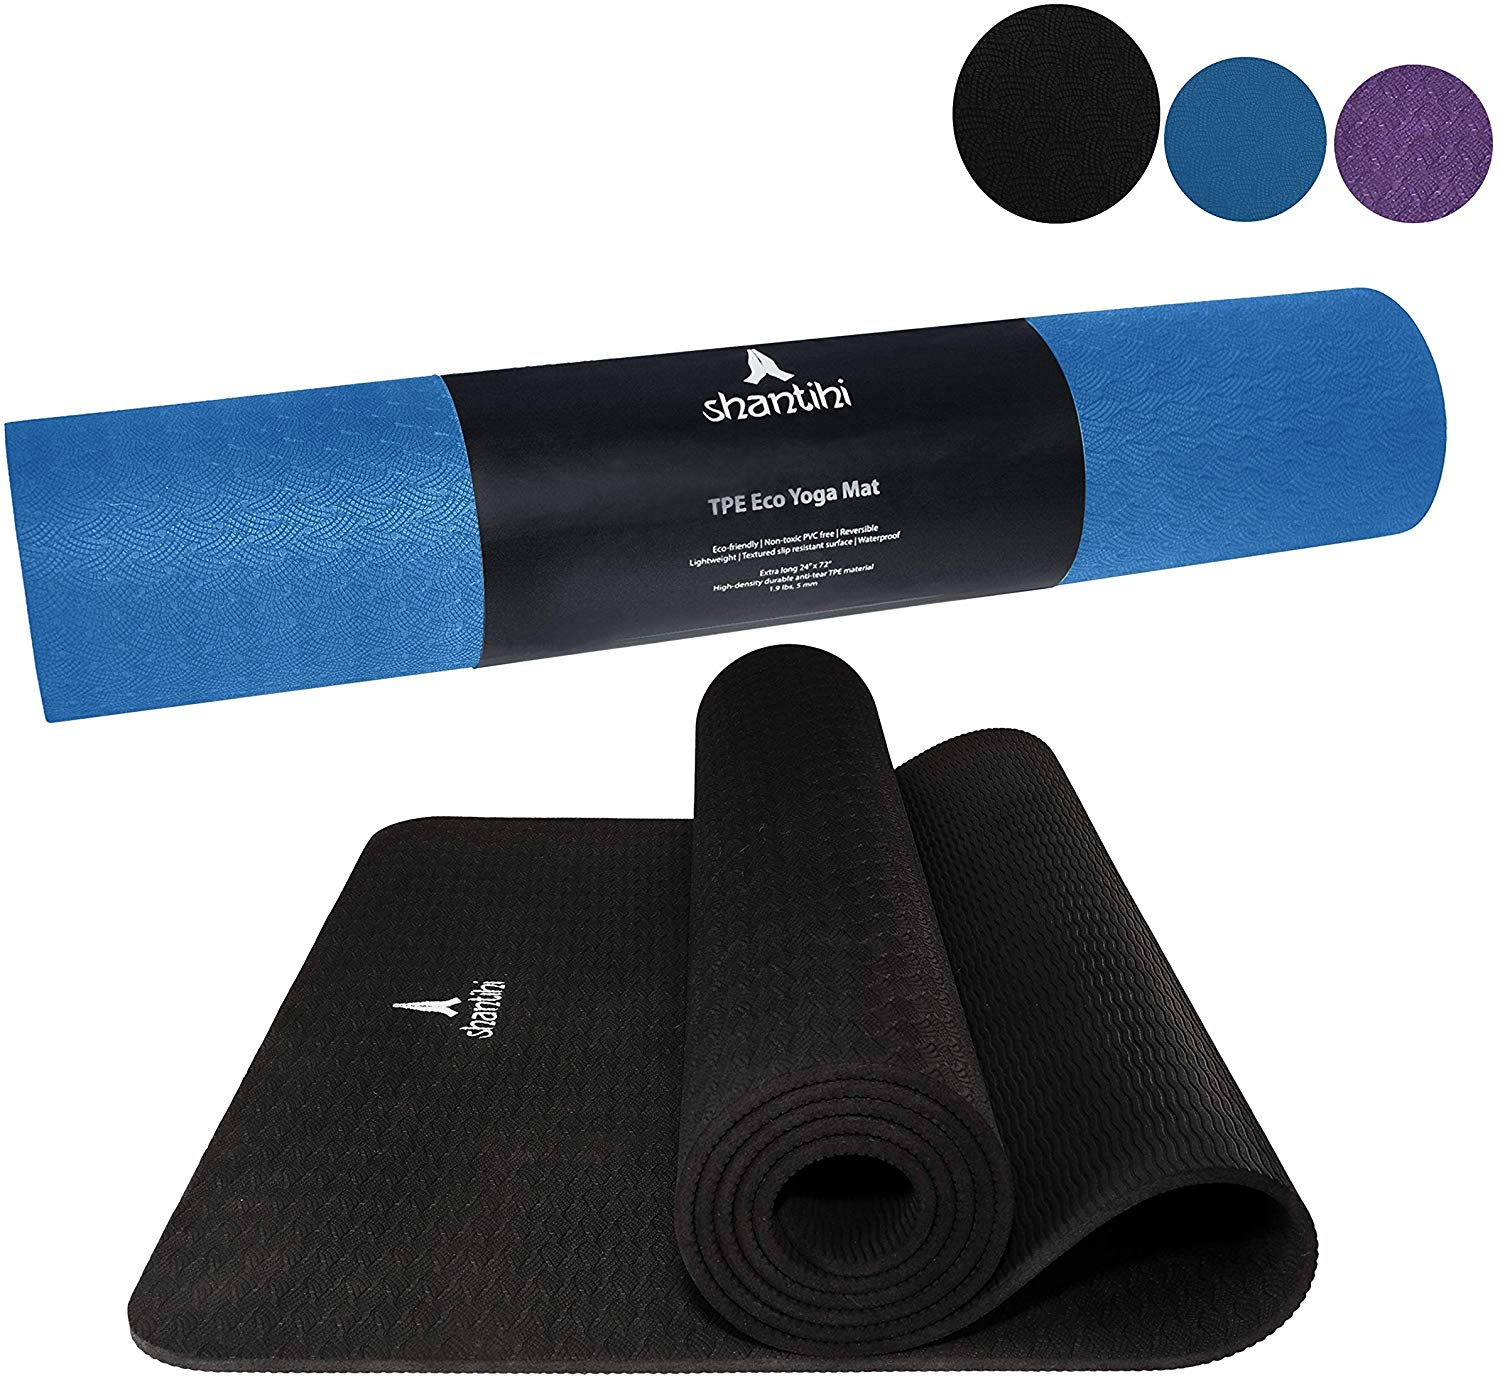 Top 10 Best Eco-Friendly Yoga Mat In 2020 - The Double Check